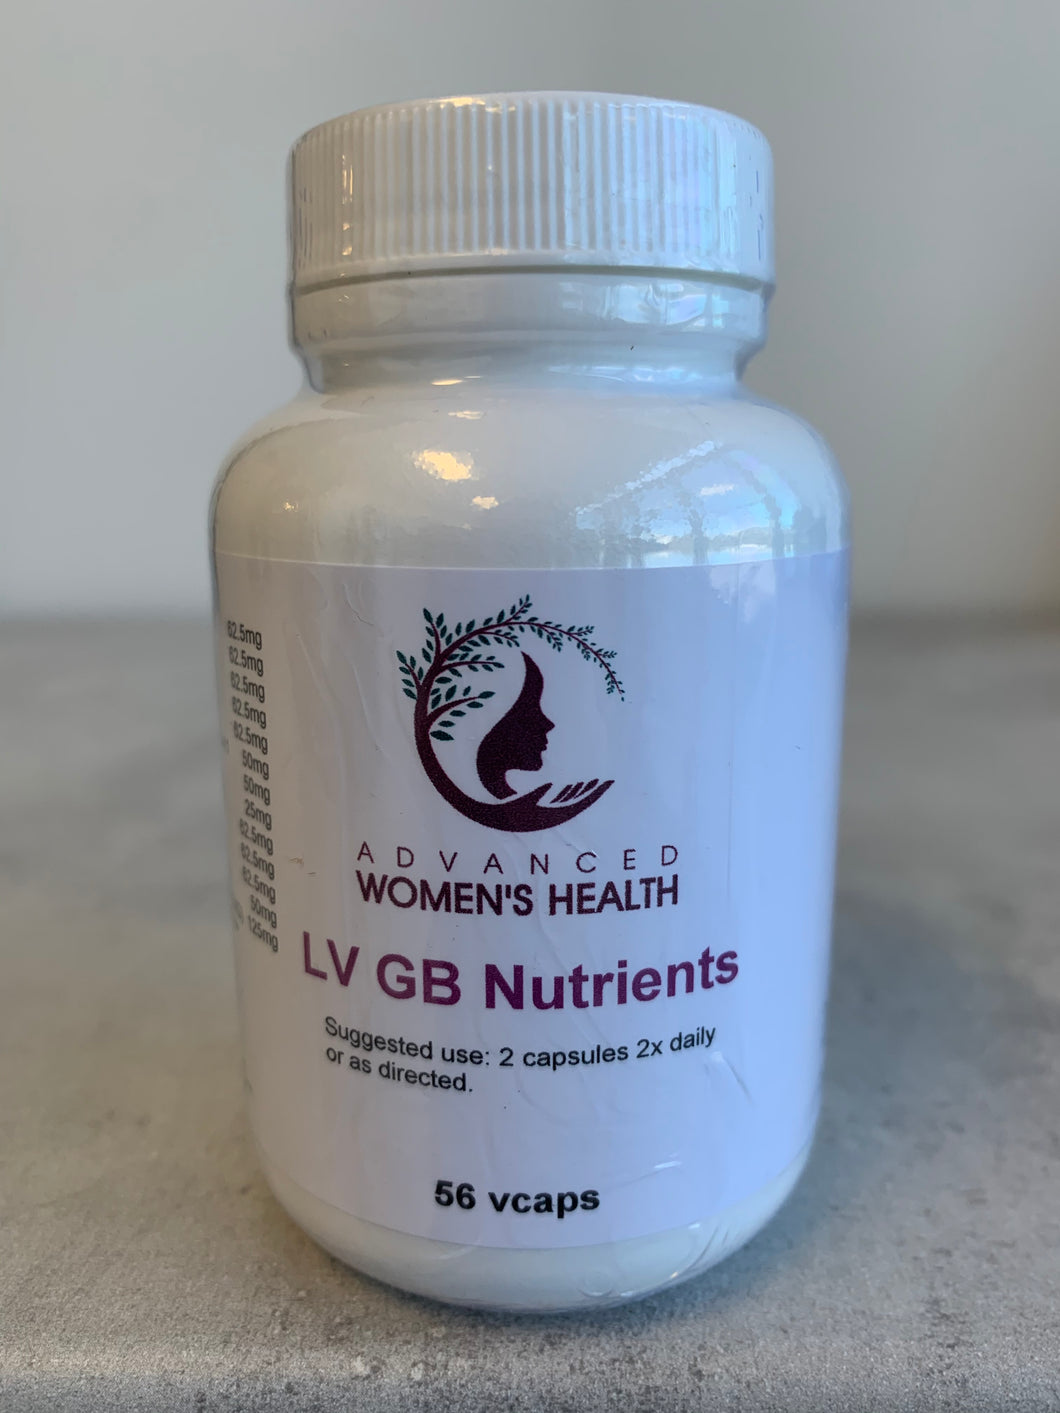 LV GB Nutrients